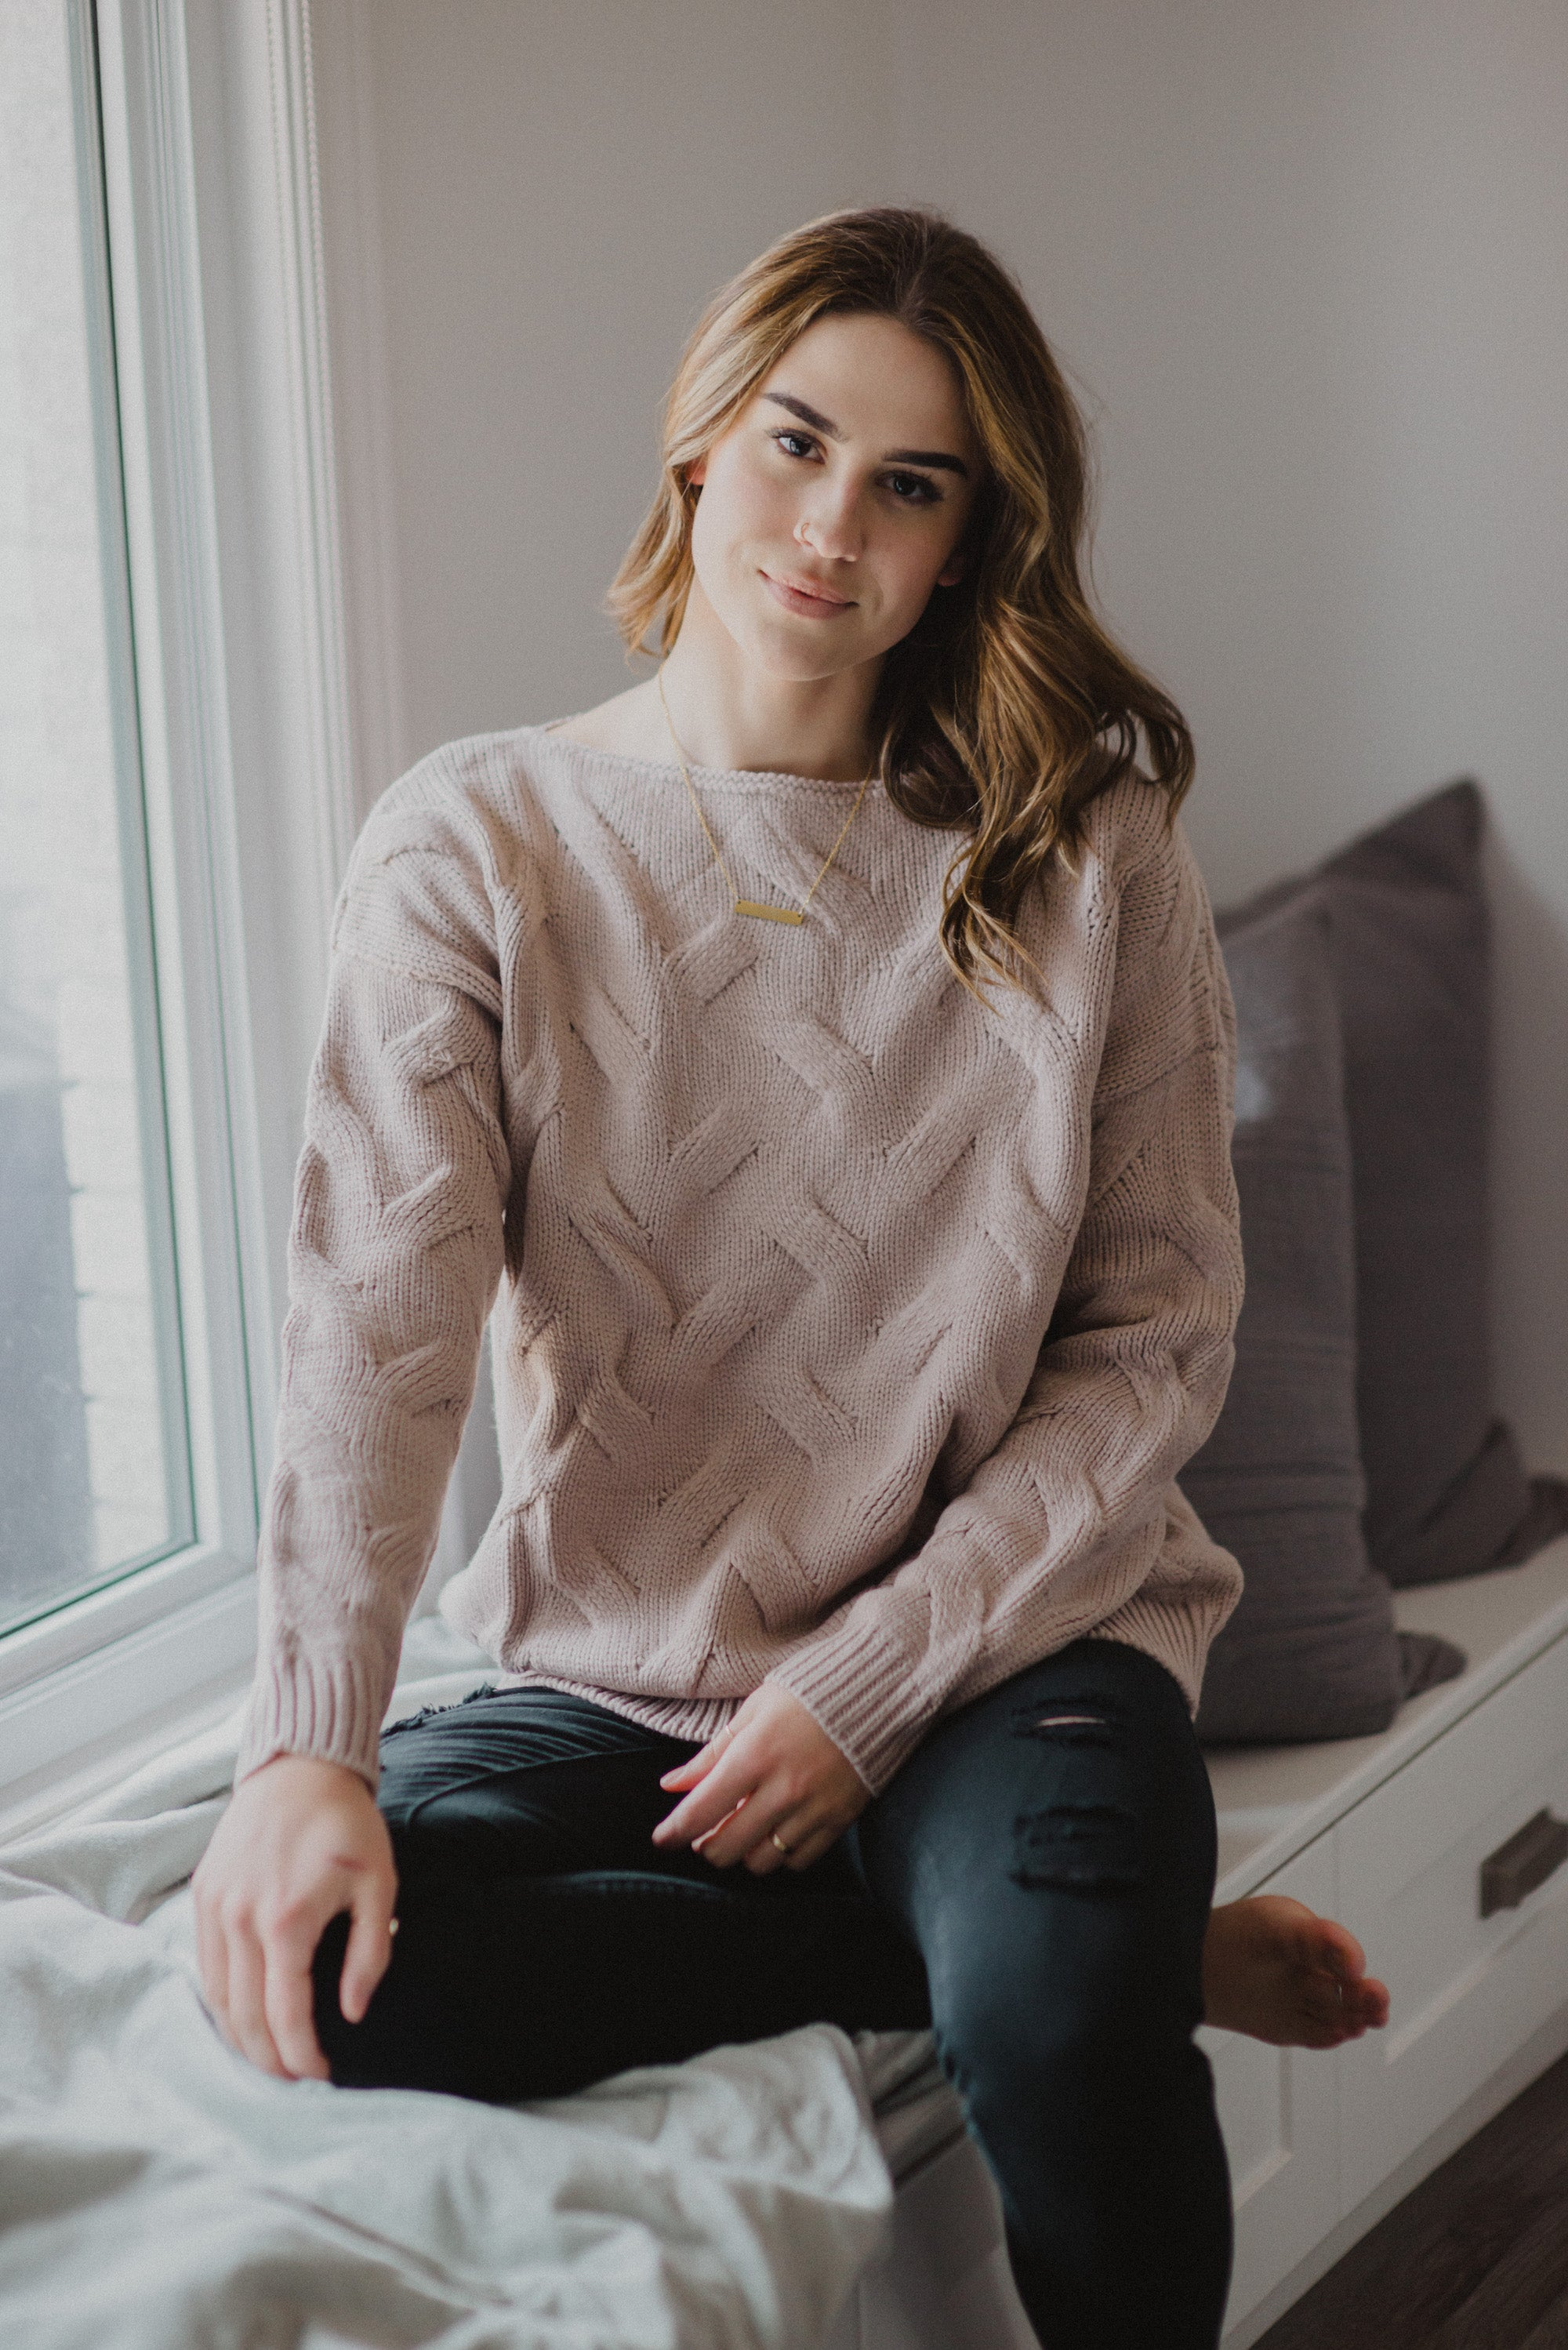 Nova Scotia Cross Wave Sweater / FINAL SALE